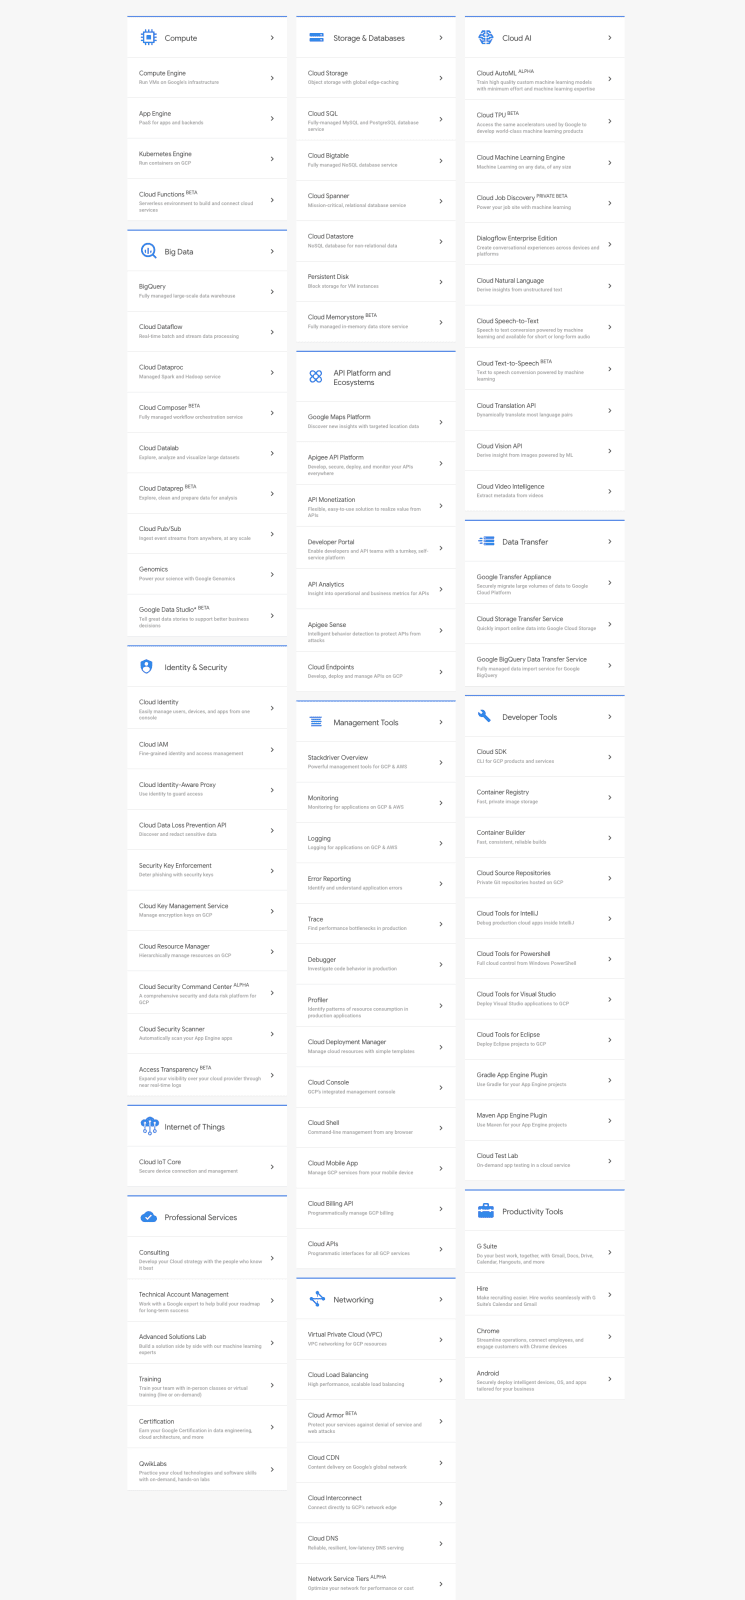 google cloud products